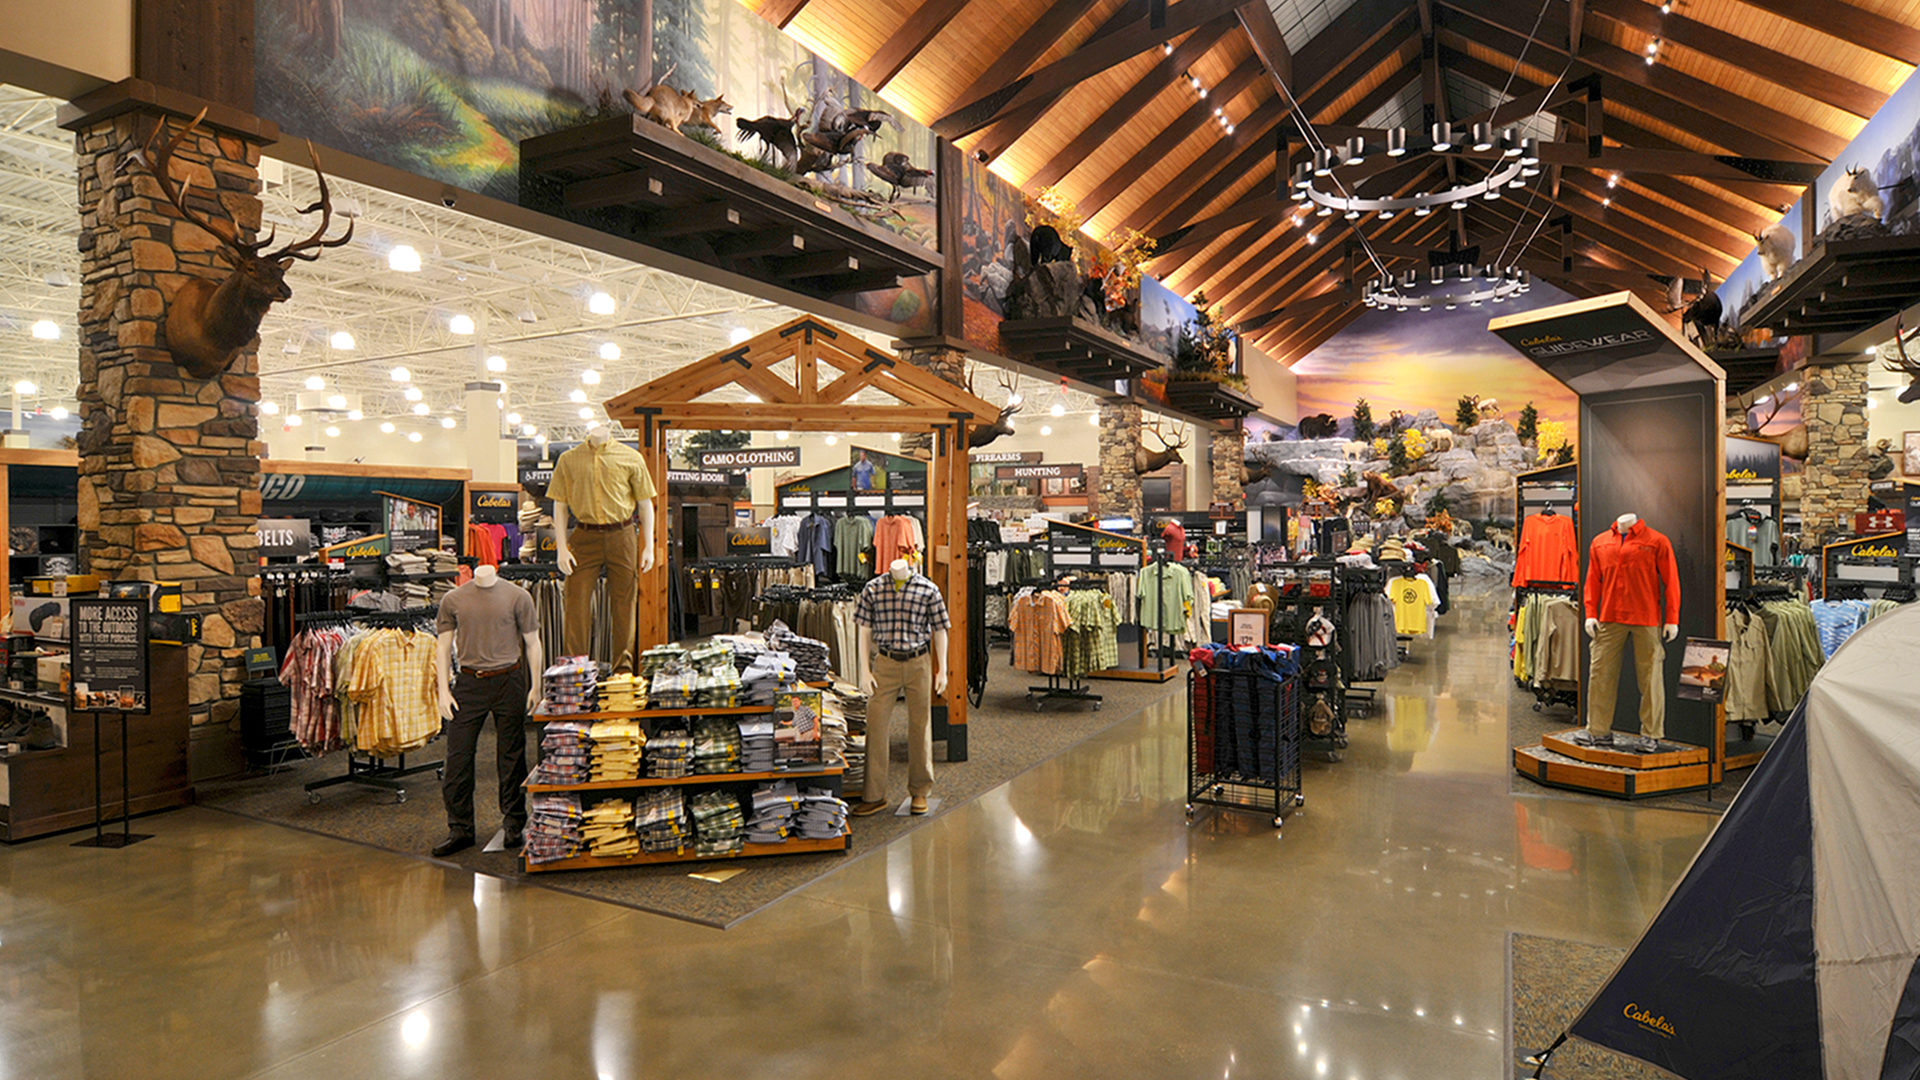 Cabelas Retail Center Sun Prairie WI Interior Mens Retail Area